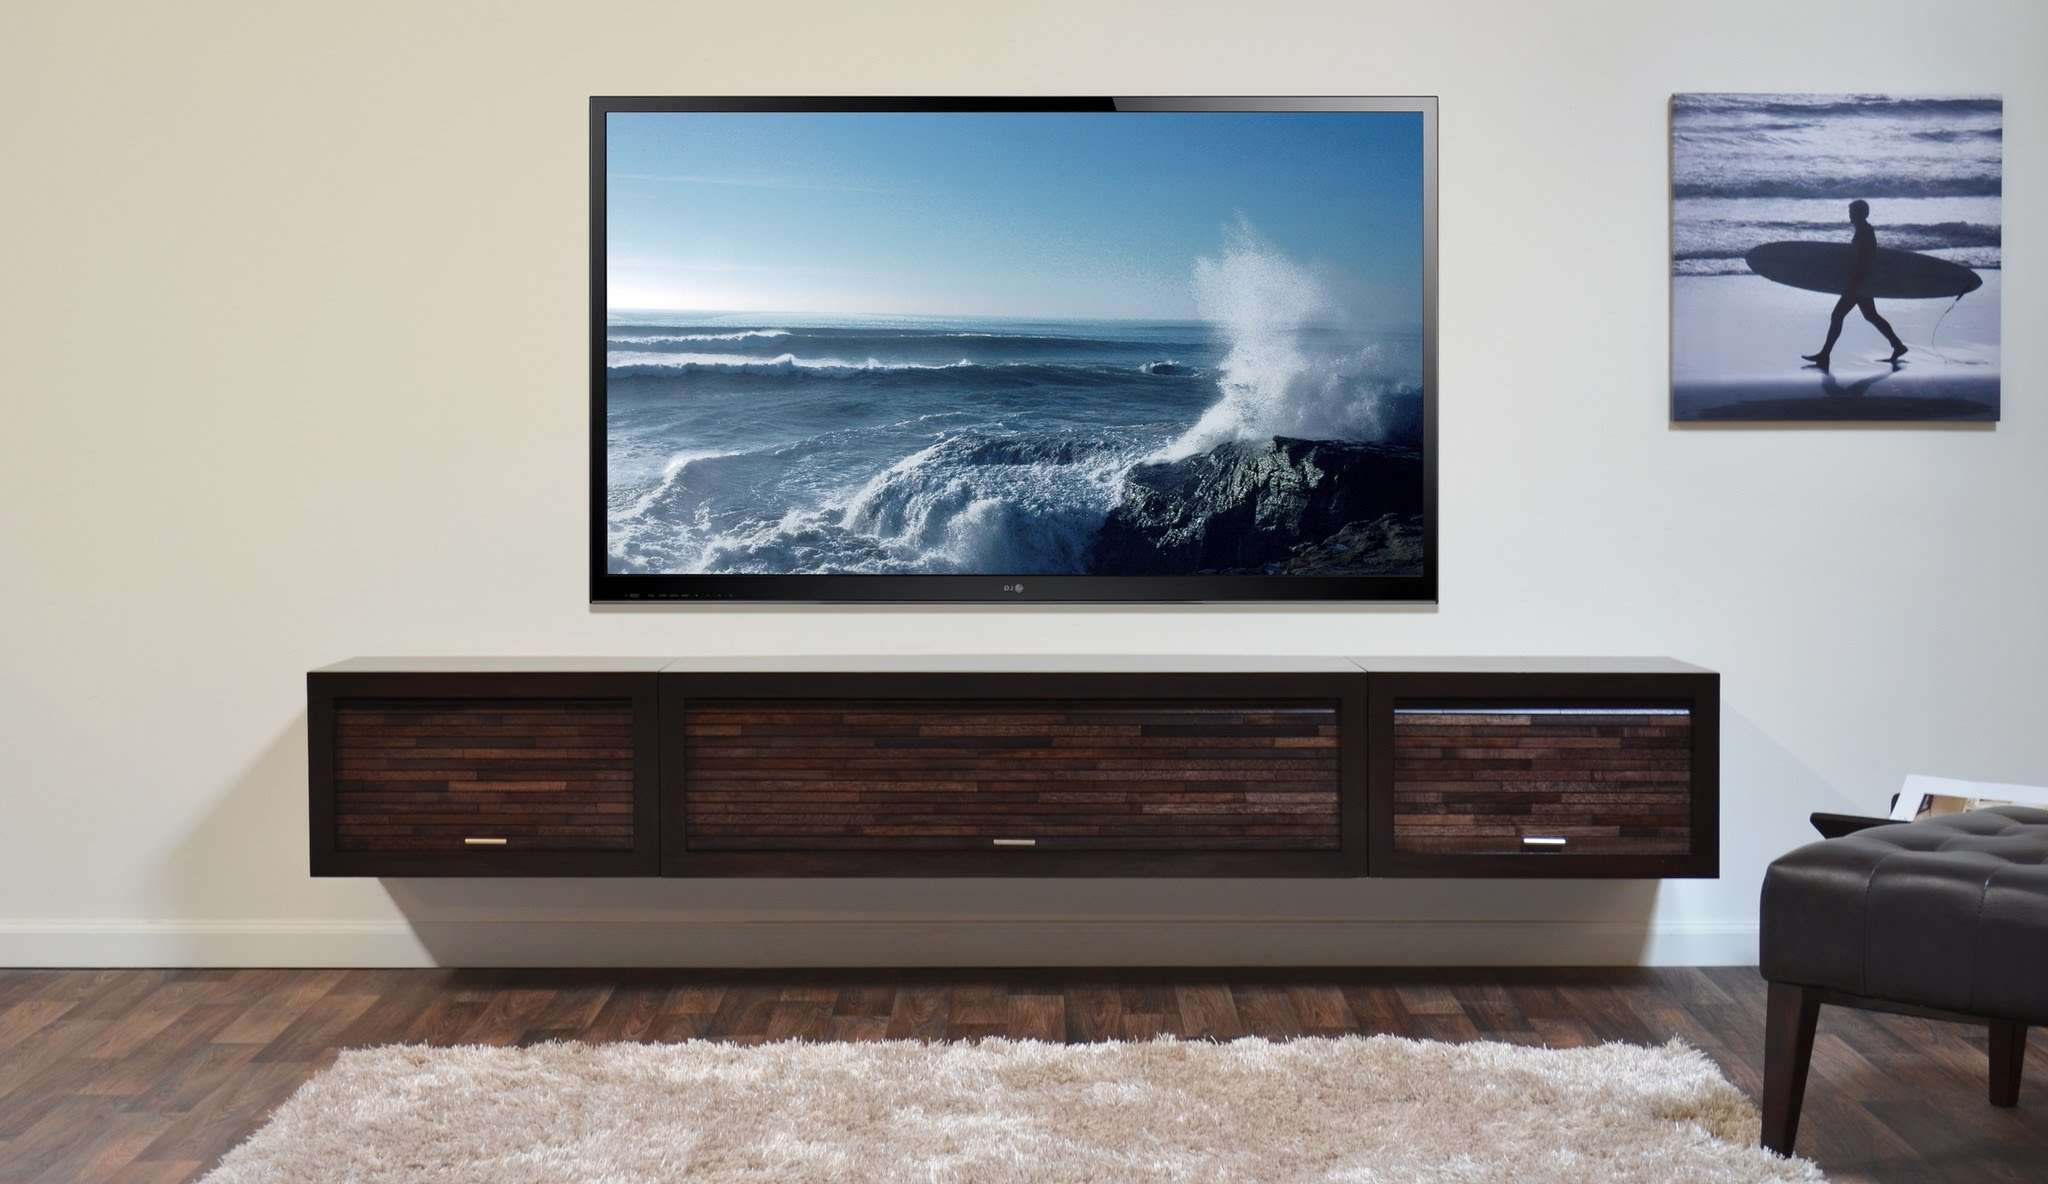 Diy Modern Tv Stand, Tv Stand Project On Pinterest – Youtube With Modern Tv Cabinets (View 18 of 20)